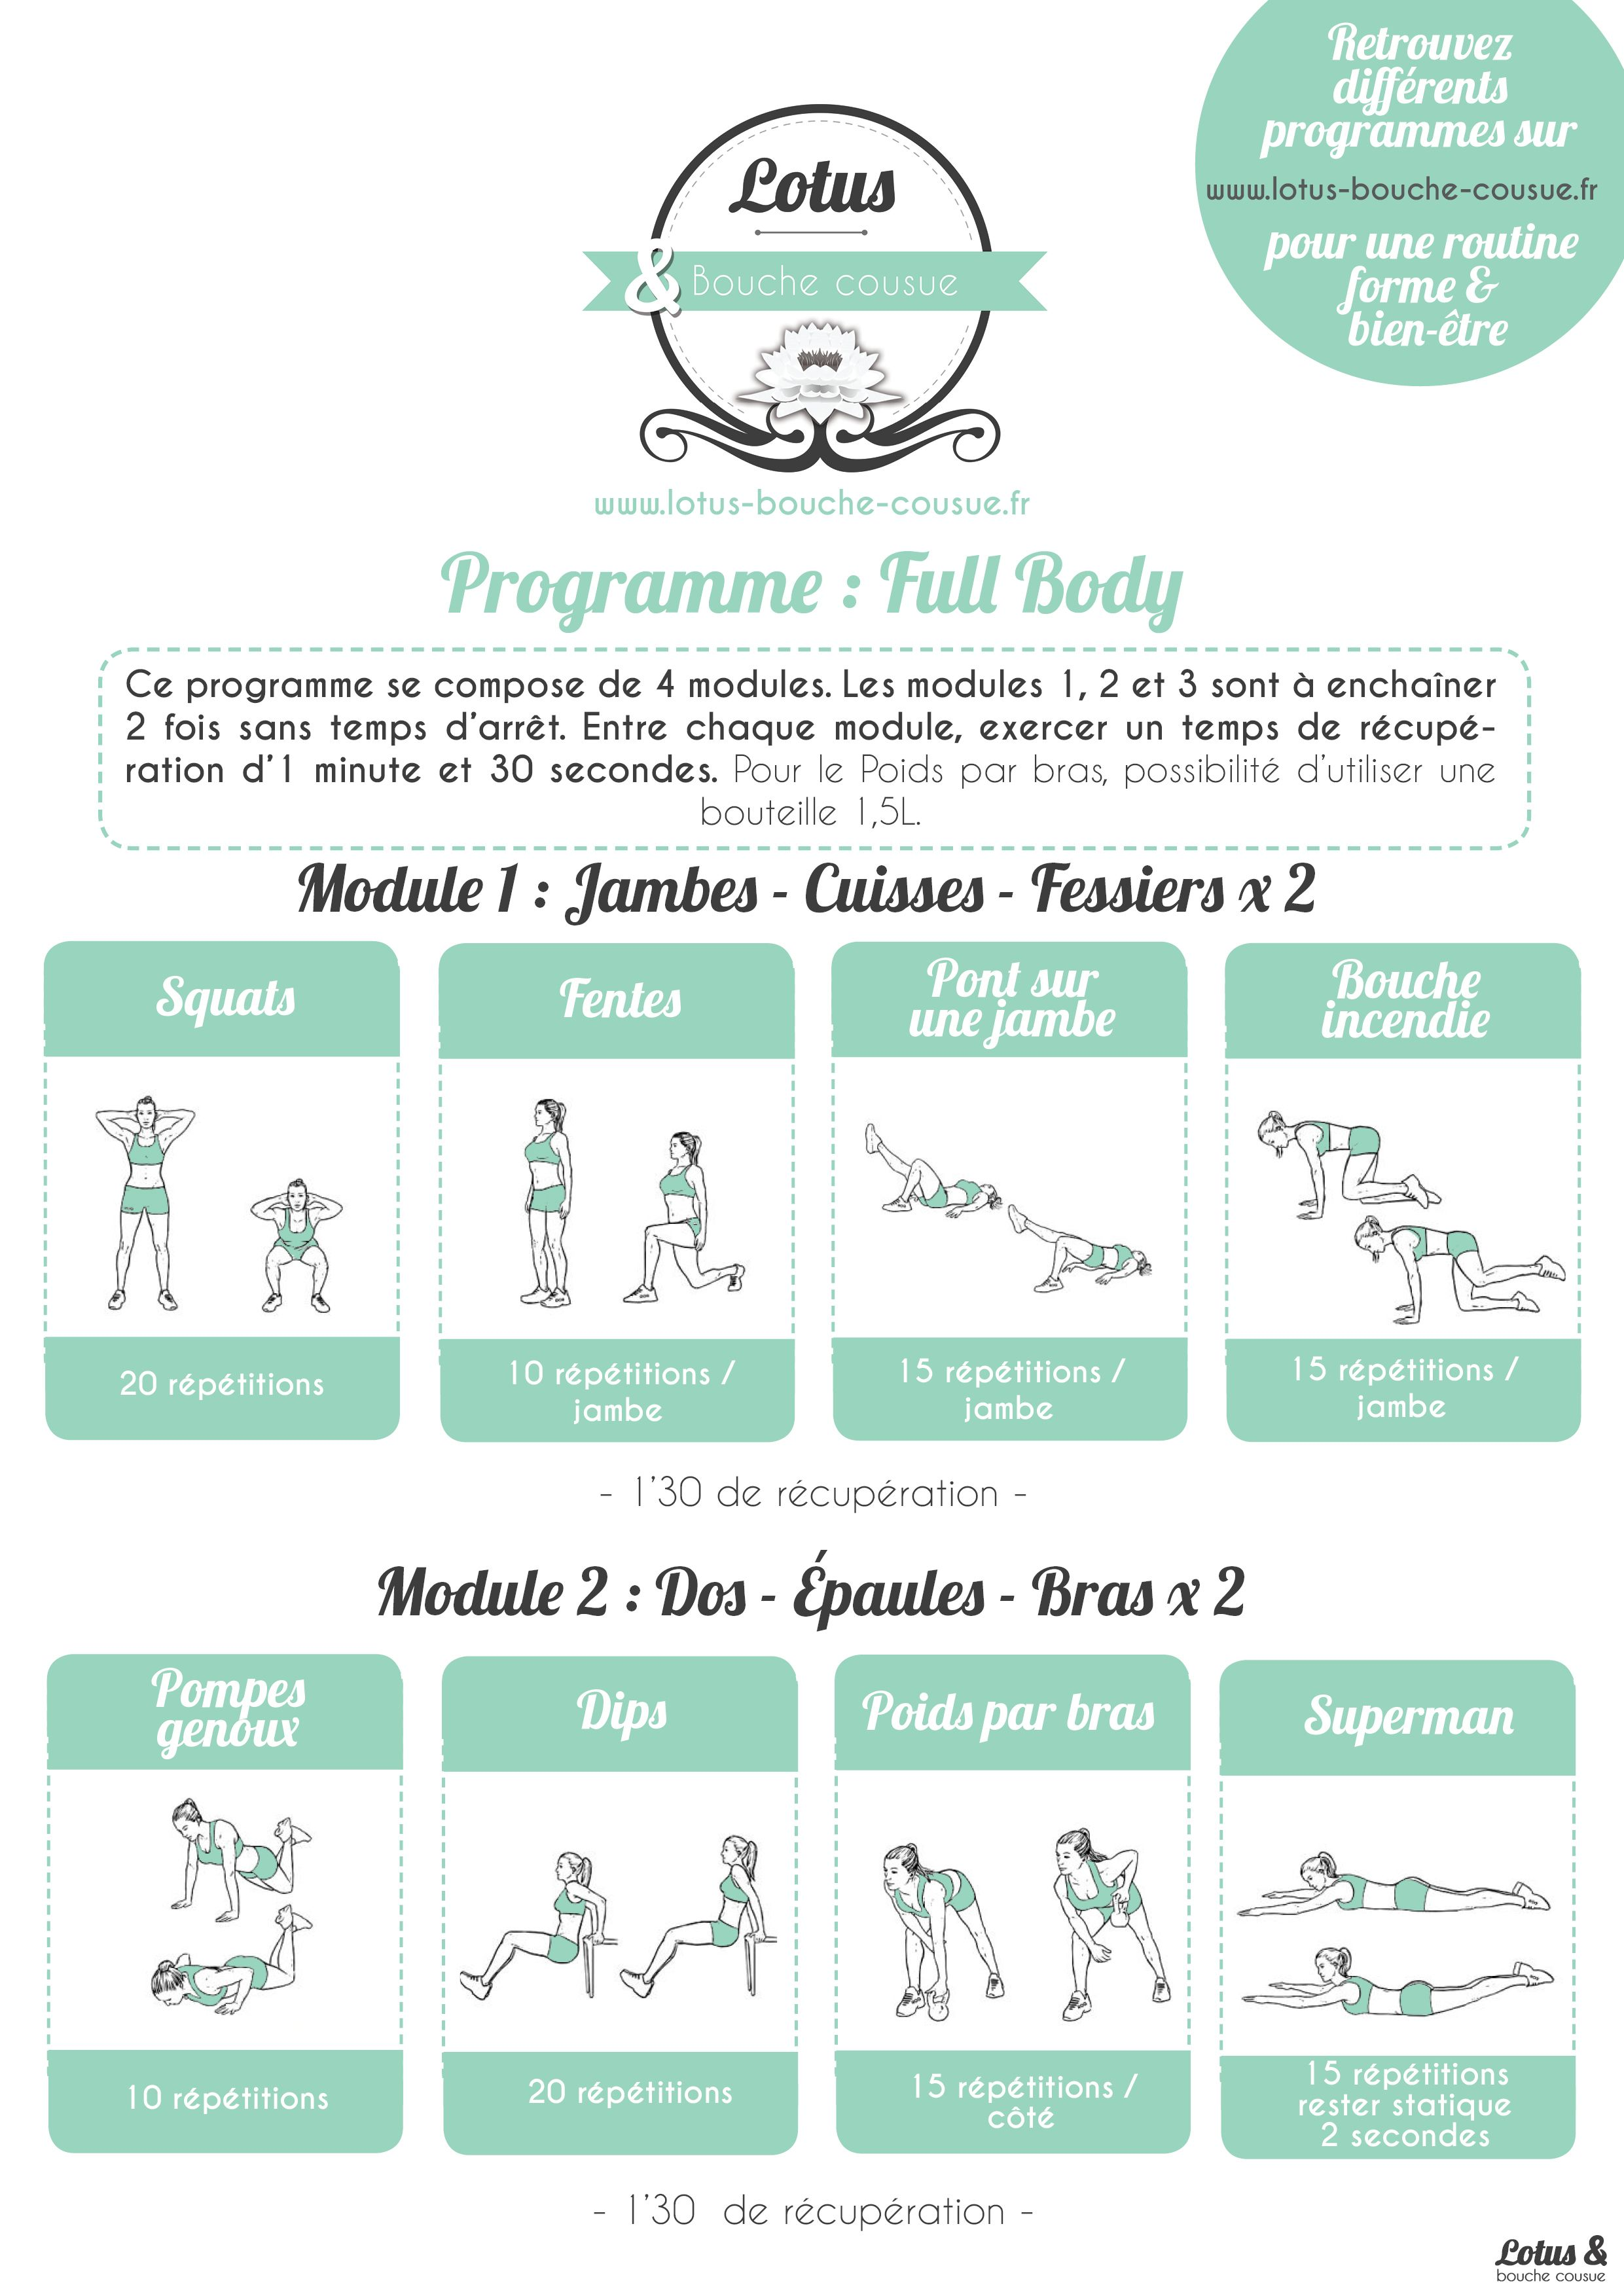 programme fitness full body n 2 cardio yoga fitness workout programs